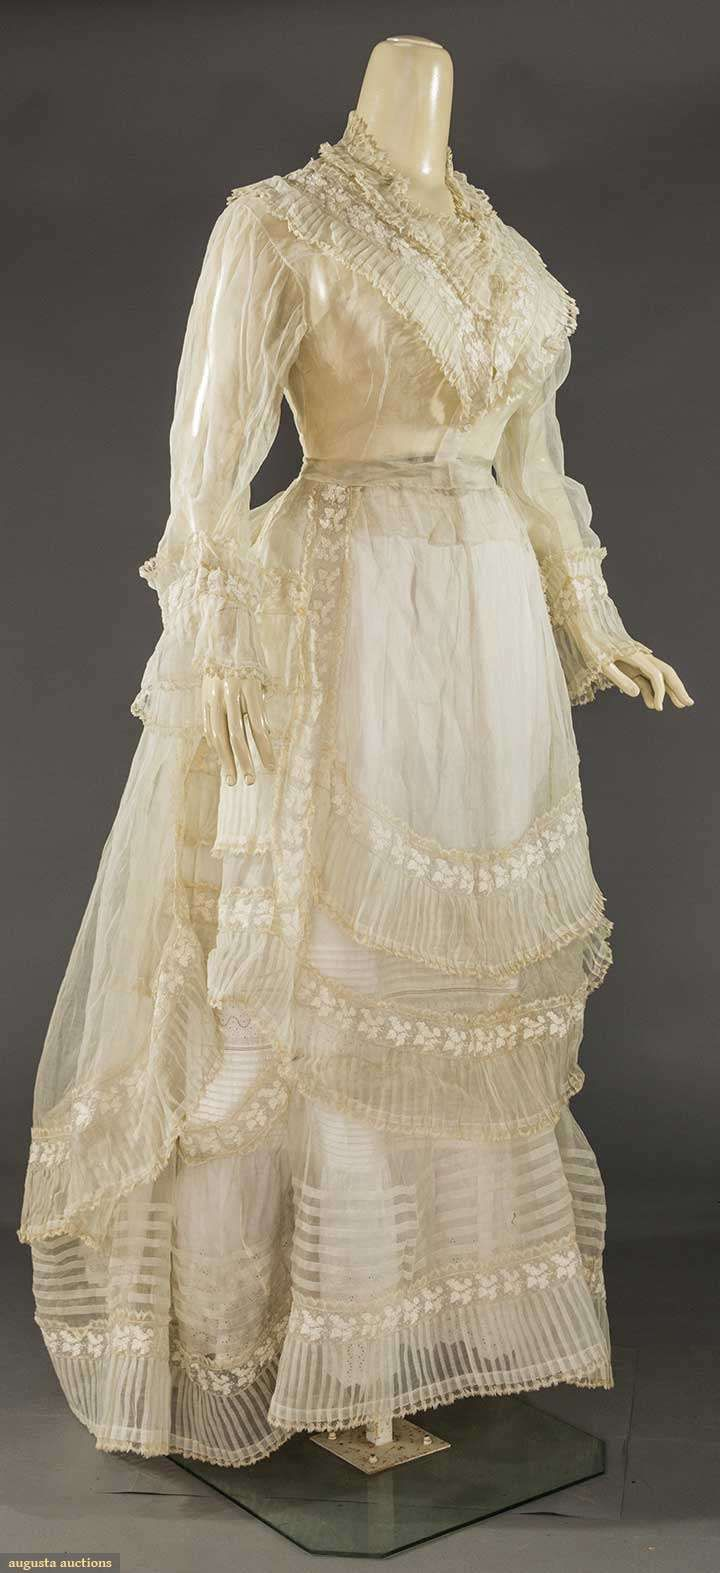 "ORGANDY & LACE DRESS PARTS, 1860-1870s | May 9, 2017 Sturbridge, Massachusetts |  1 incomplete dress, white organdy & acorn embroidered trim, c/o bodice, over-skirt & hem flounce, B to 38"", W 26"", Skirt L 28""-40"", (faint brown stains, W band dirty) very good"